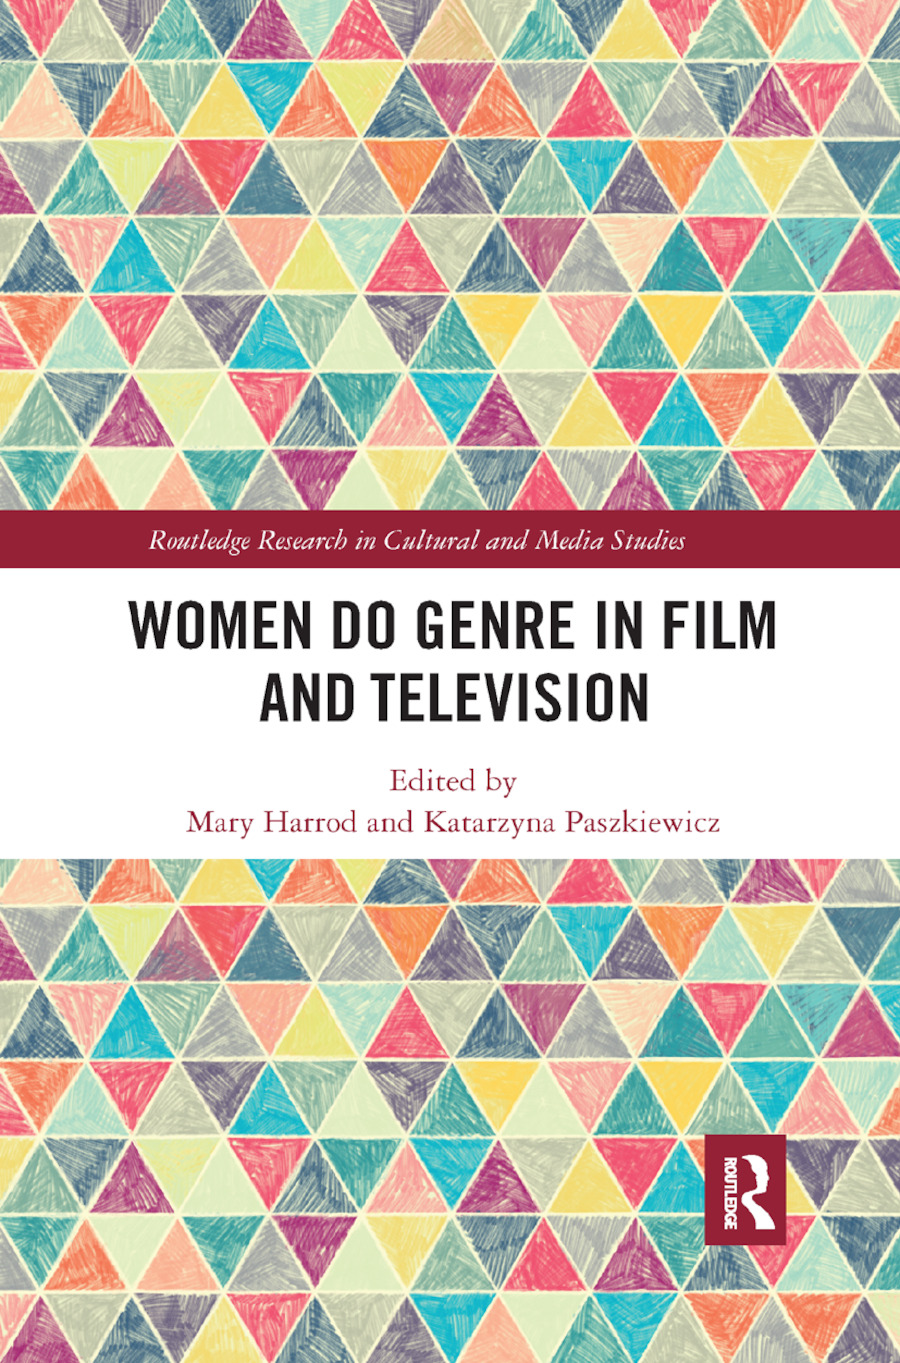 Women Do Genre in Film and Television